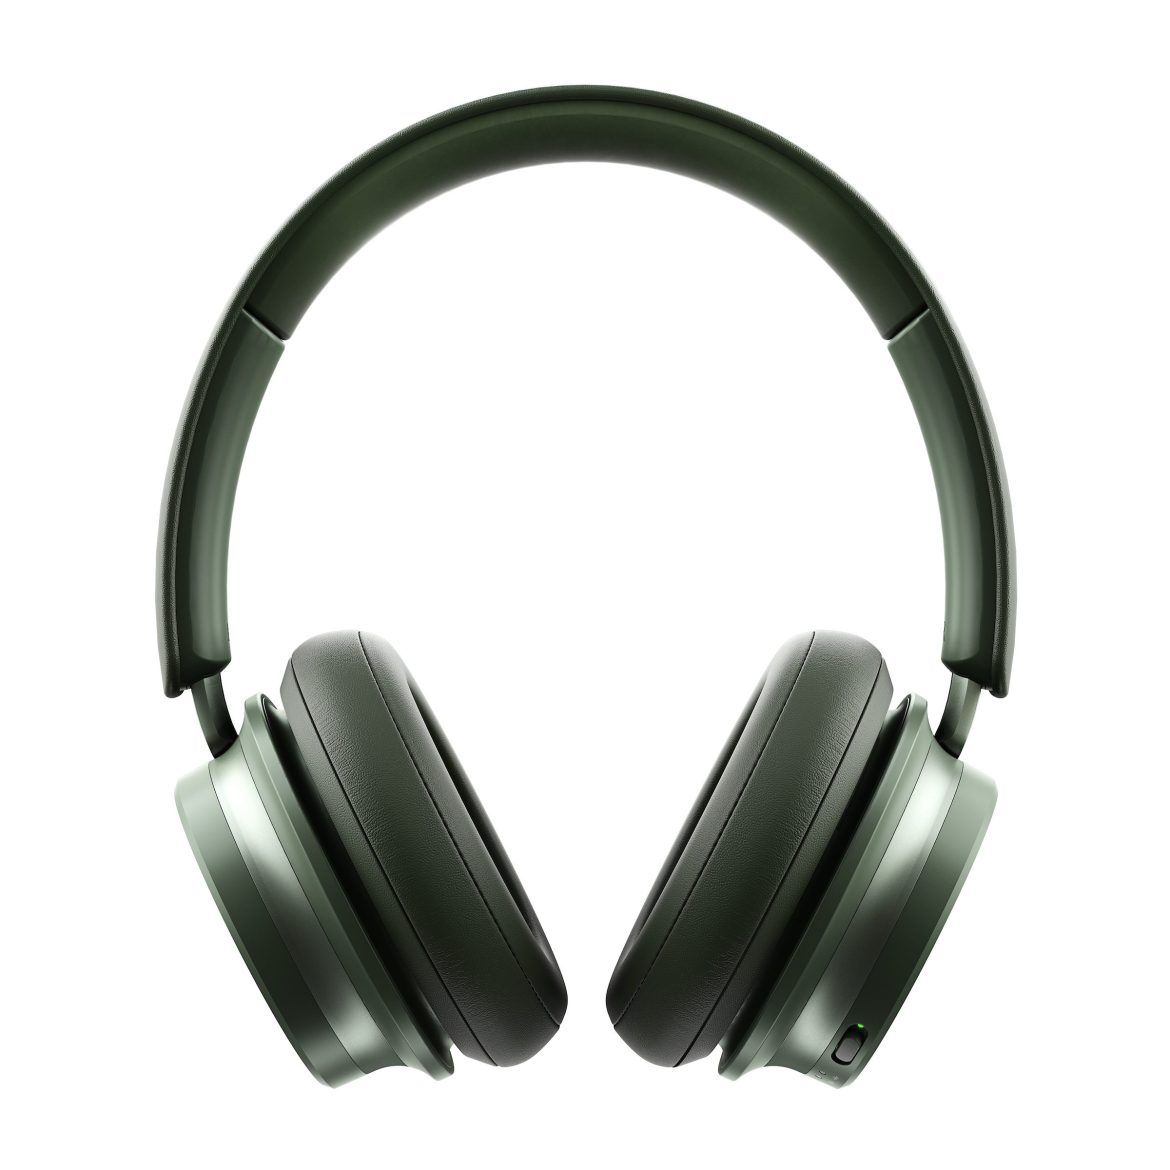 DALI is hitting the streets in some new finishes on their IO headphones